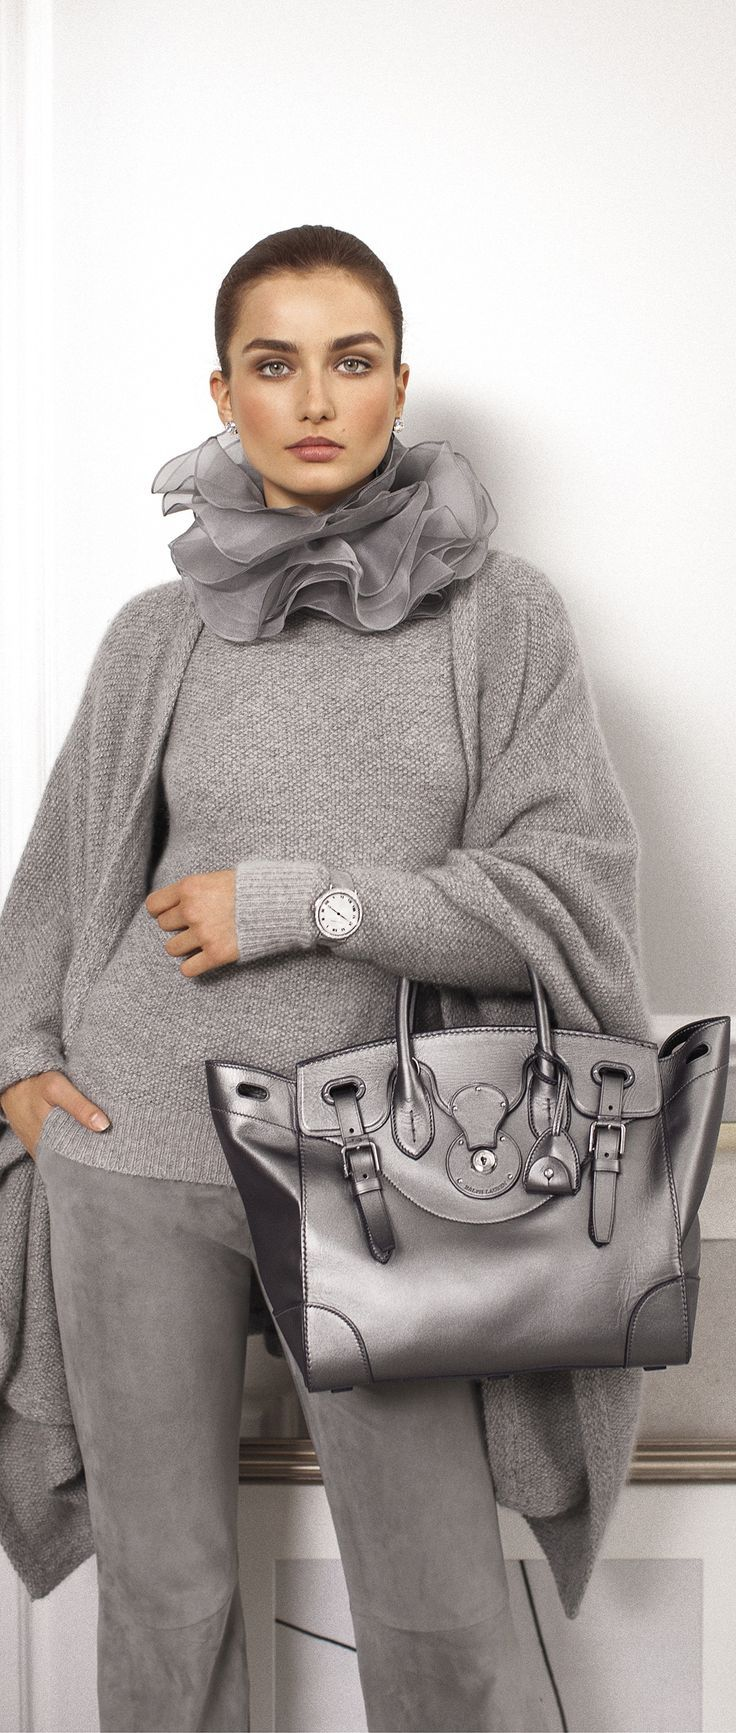 e70ca908e8 The Silver Metallic Ralph Lauren Soft Ricky Bag is exquisitely made in Italy  from layers of hand-stitched